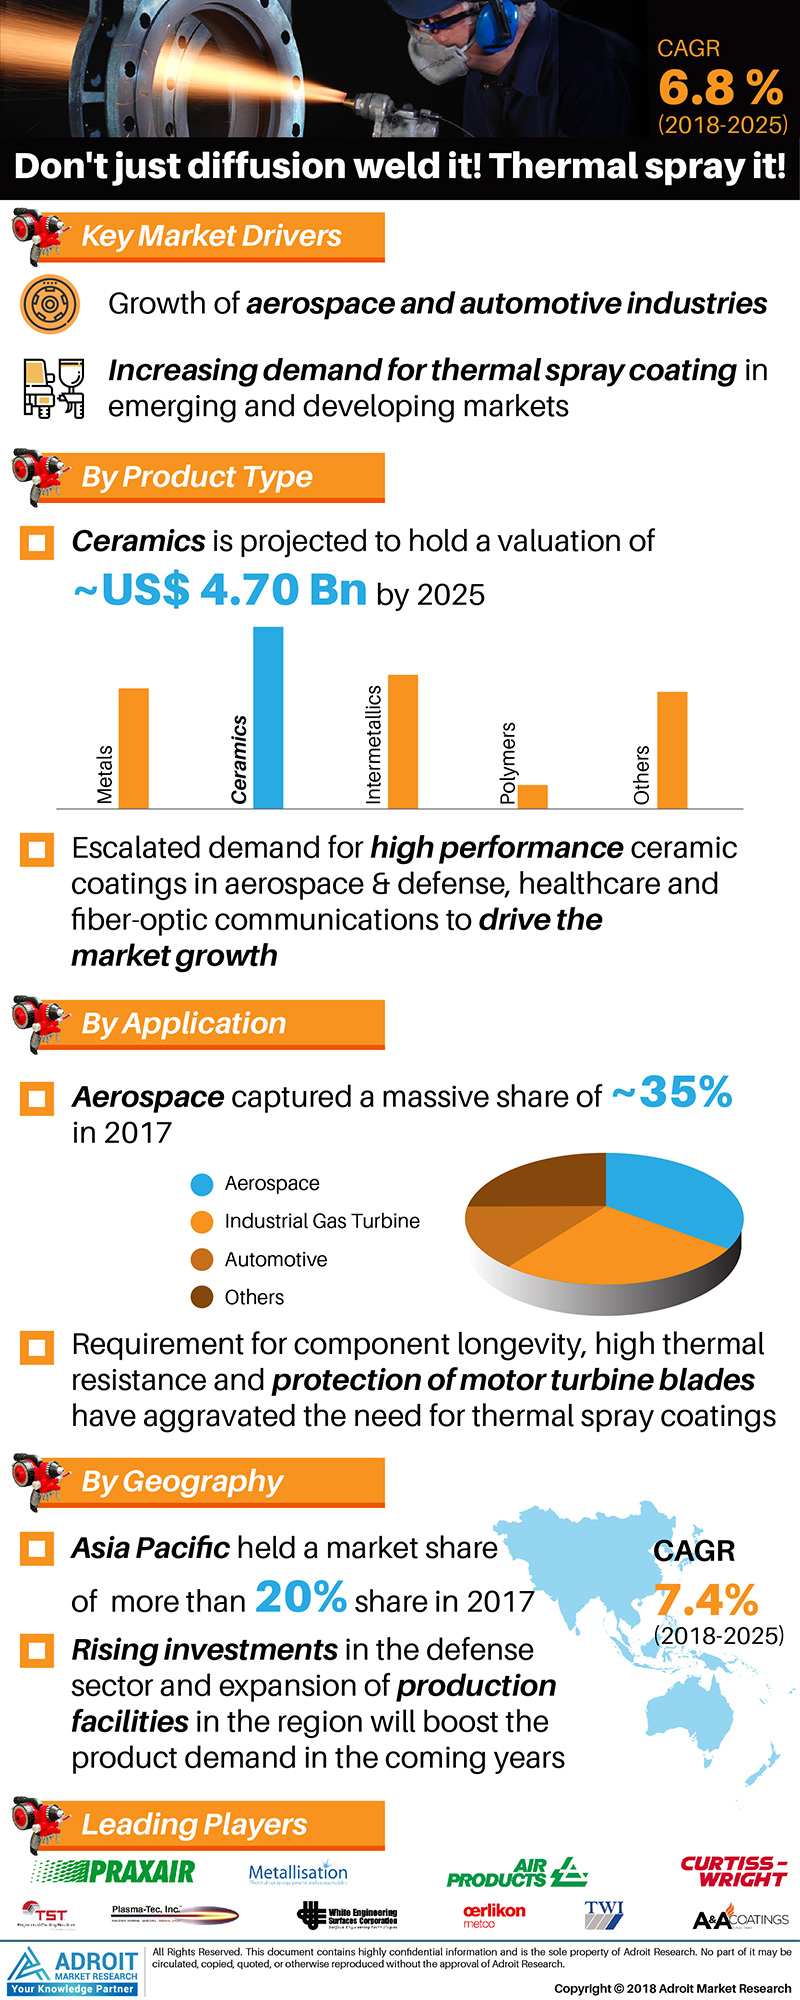 Global Thermal Spray Coatings Market Size 2017 By Product, Application, Region and Forecast 2018 to 2025